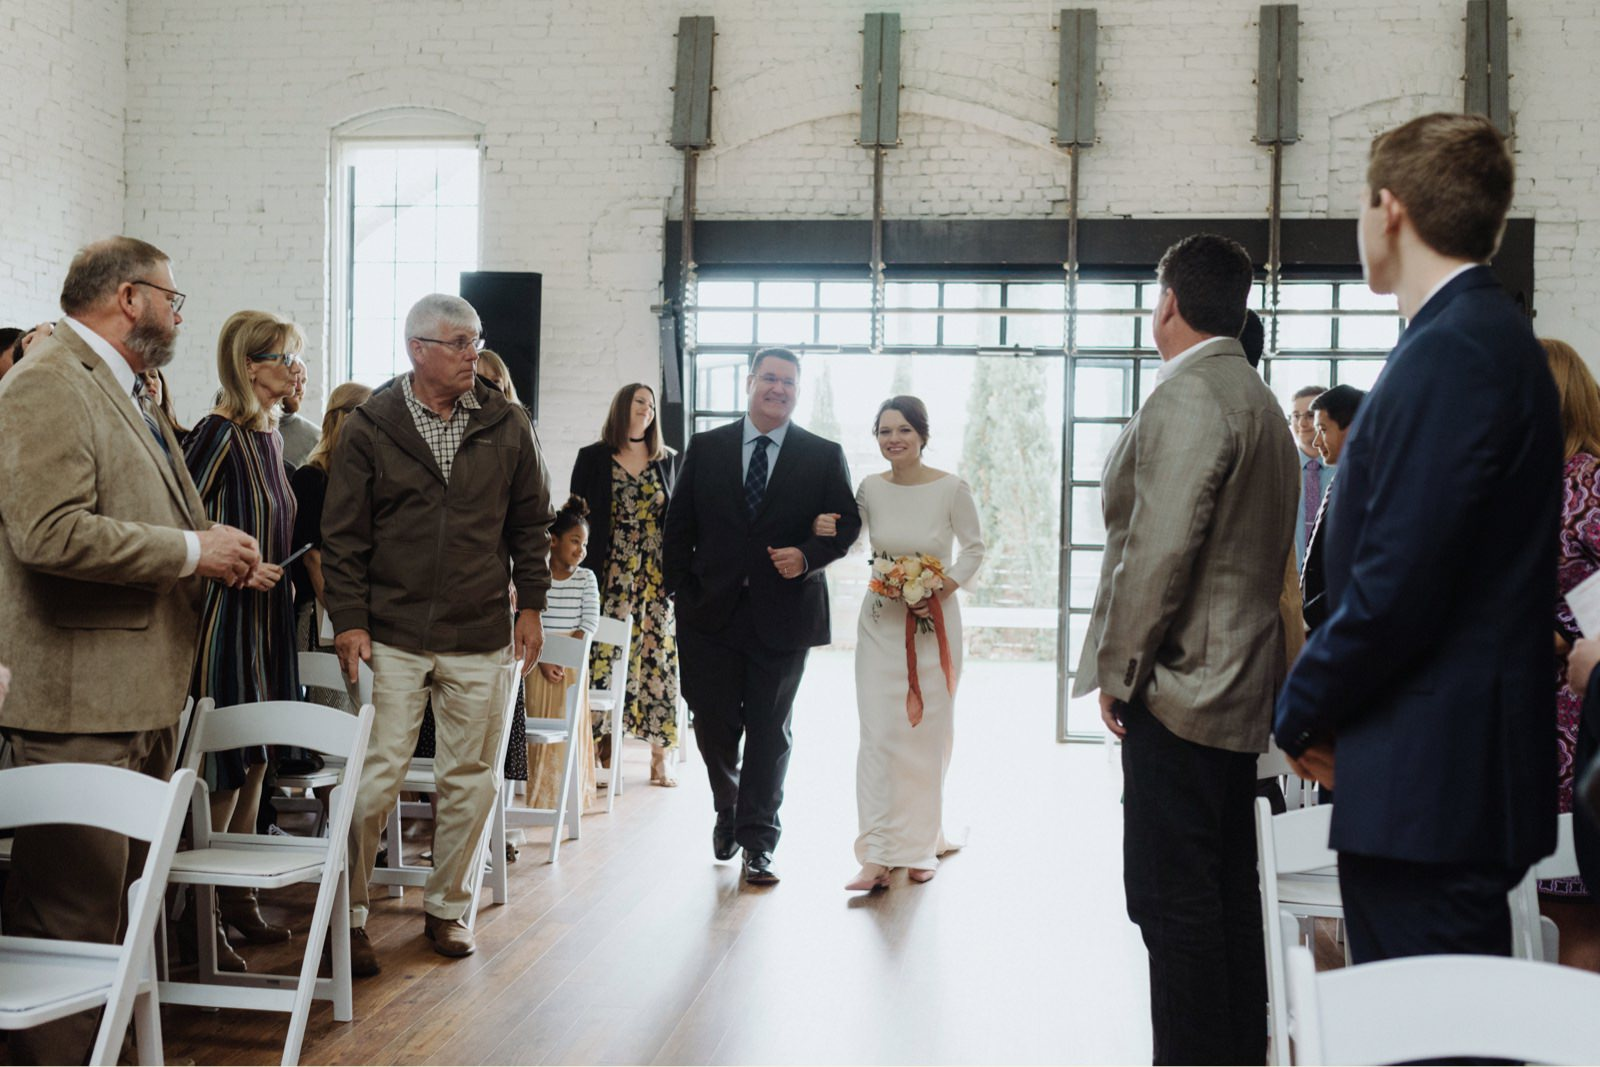 Bride and her fathering entering urban loft ceremony aisle from black industrial doors